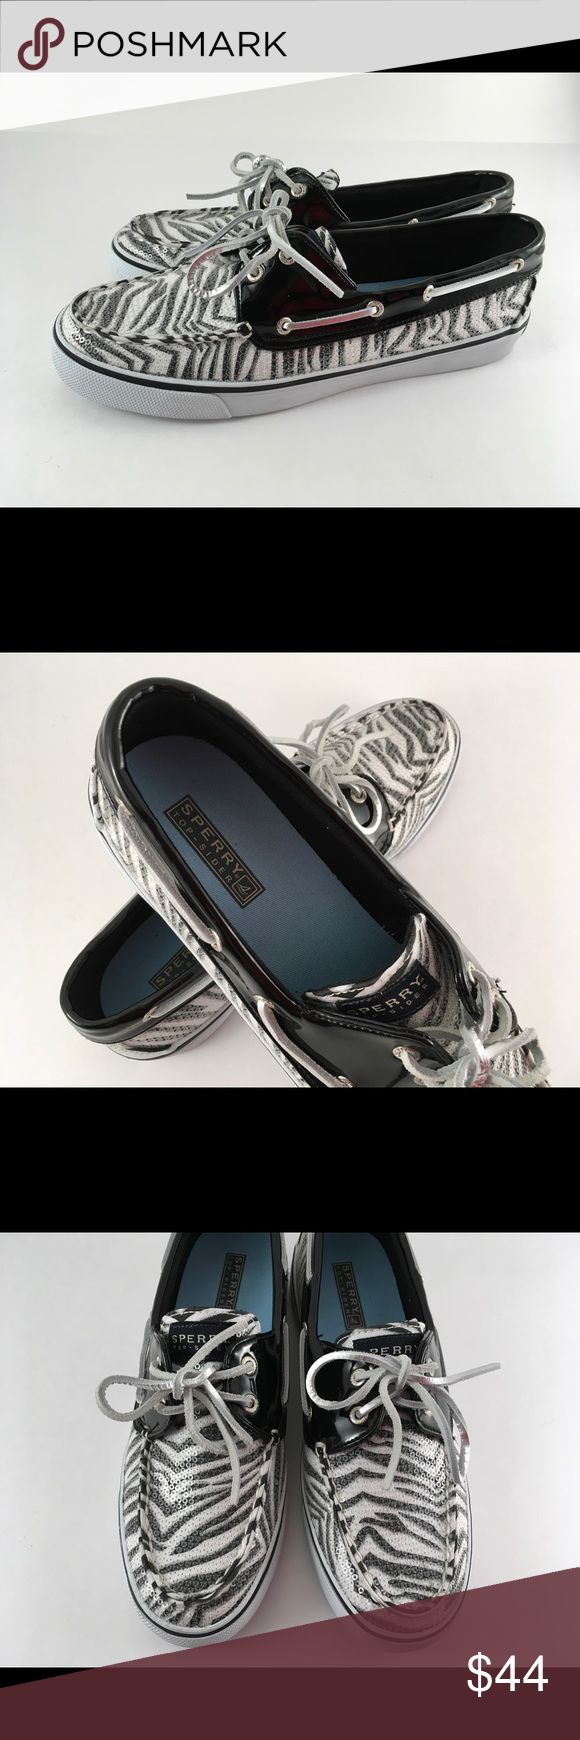 🔅NWOT SPERRY Top Sider Shoes Size 9🔅 Awesome Sperry Top Sider sequins zebra print deck shoe. Size 9. New without tags. Never worn. These are so fun and unique! Sperry Shoes Flats & Loafers